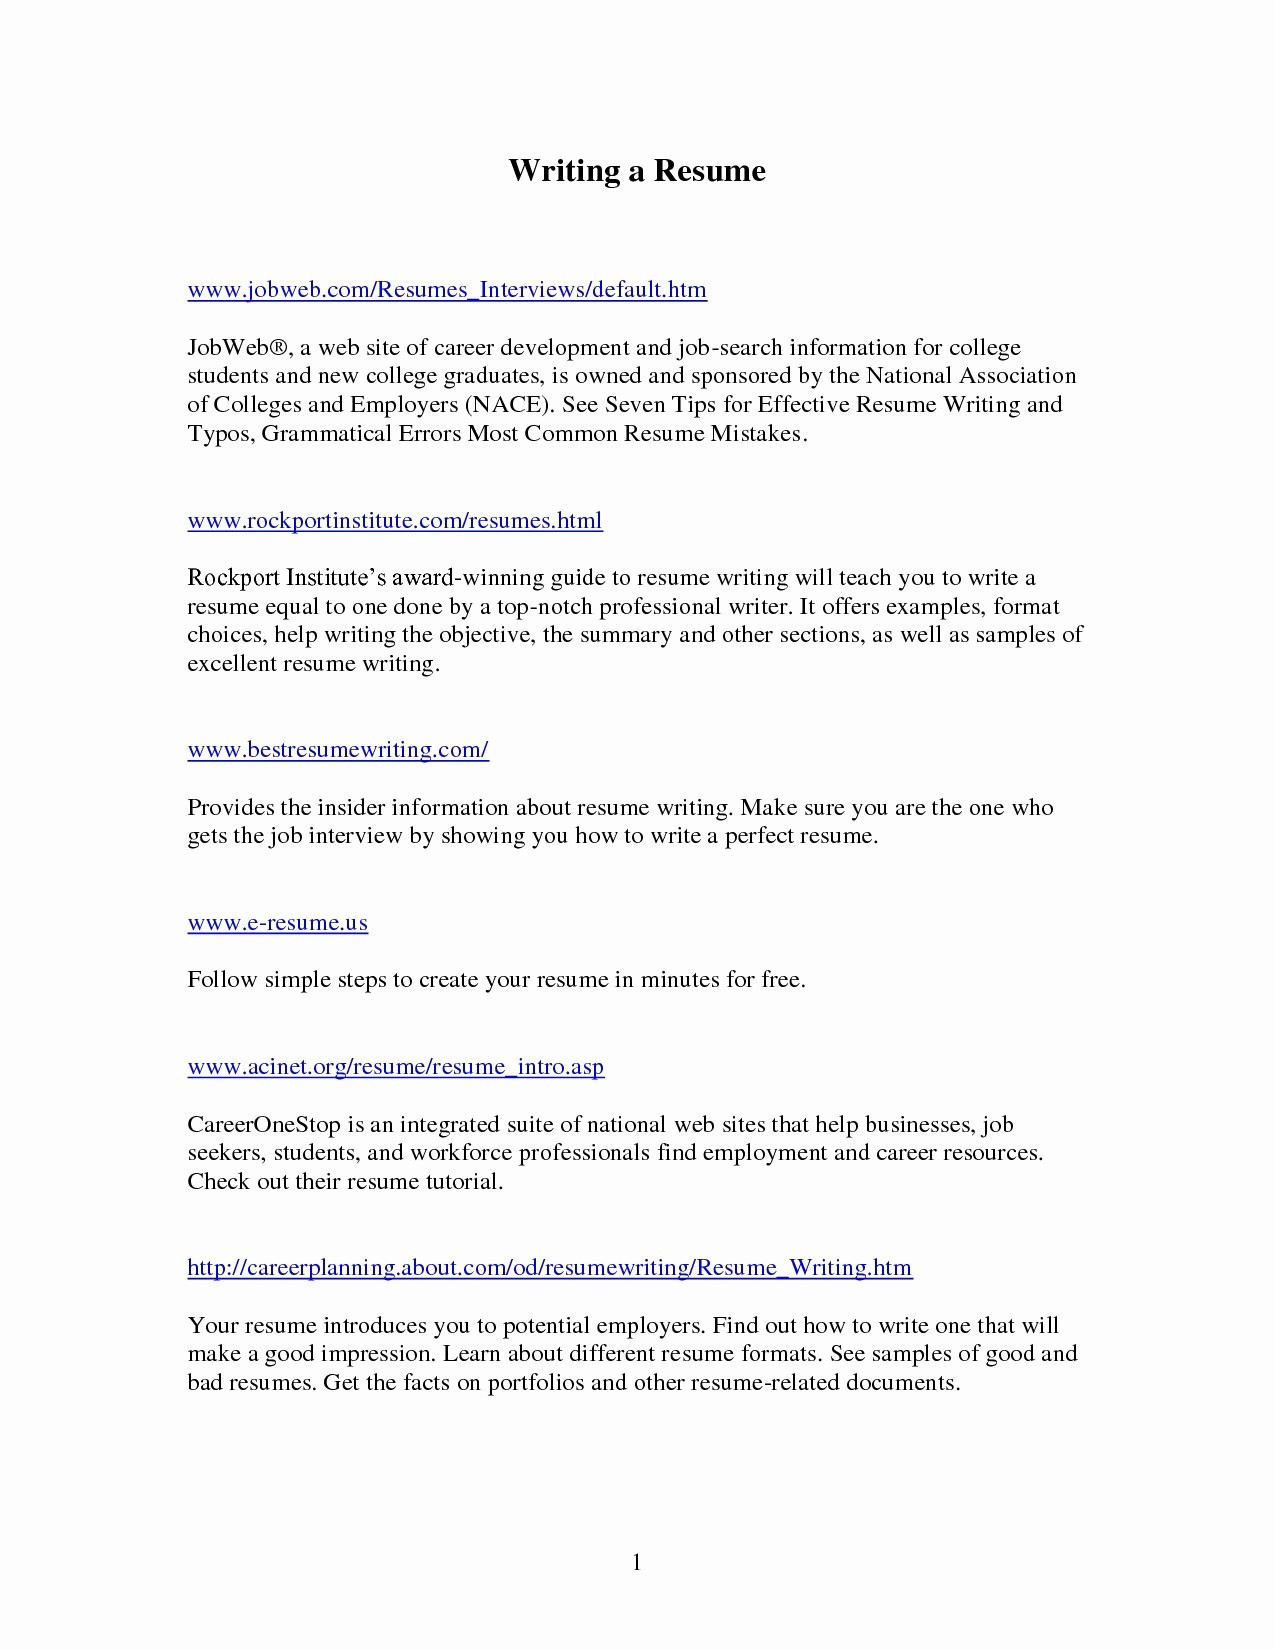 Monster Resume Service - Beautiful Line Cv New Resume format Professional Resume Resume